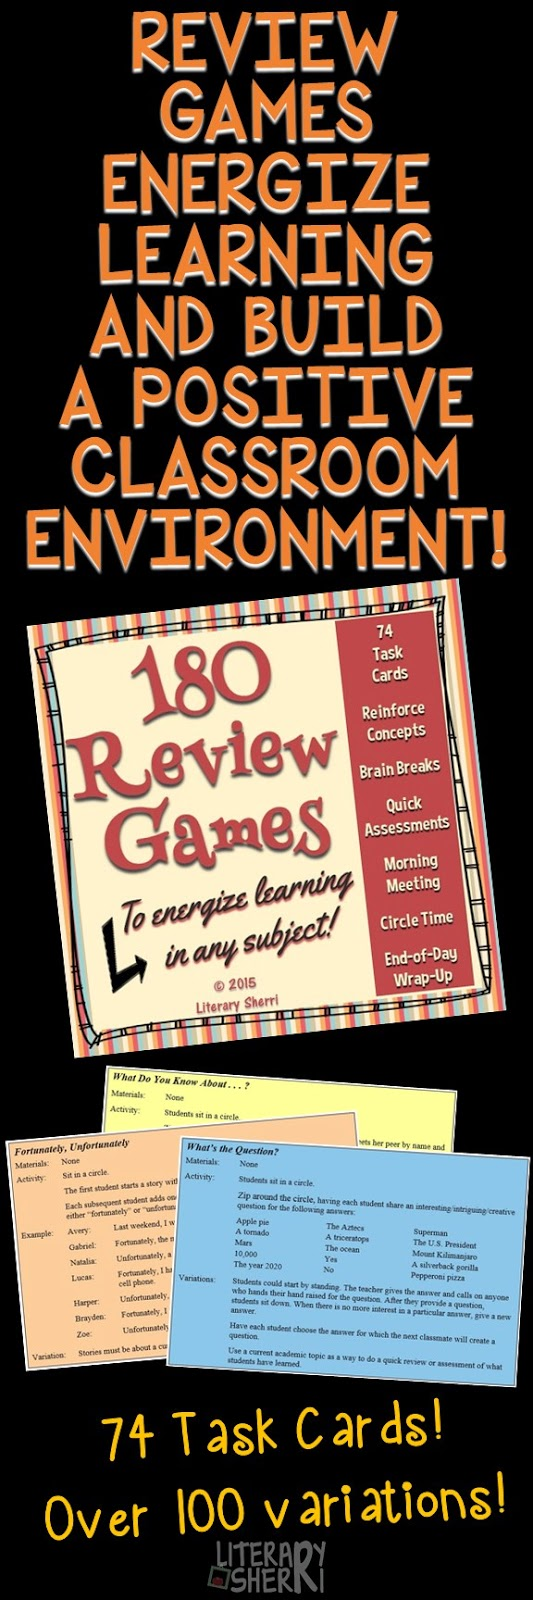 https://www.teacherspayteachers.com/Product/Review-Games-and-Brain-Breaks-for-Middle-School-Grades-5-6-7-8-849523